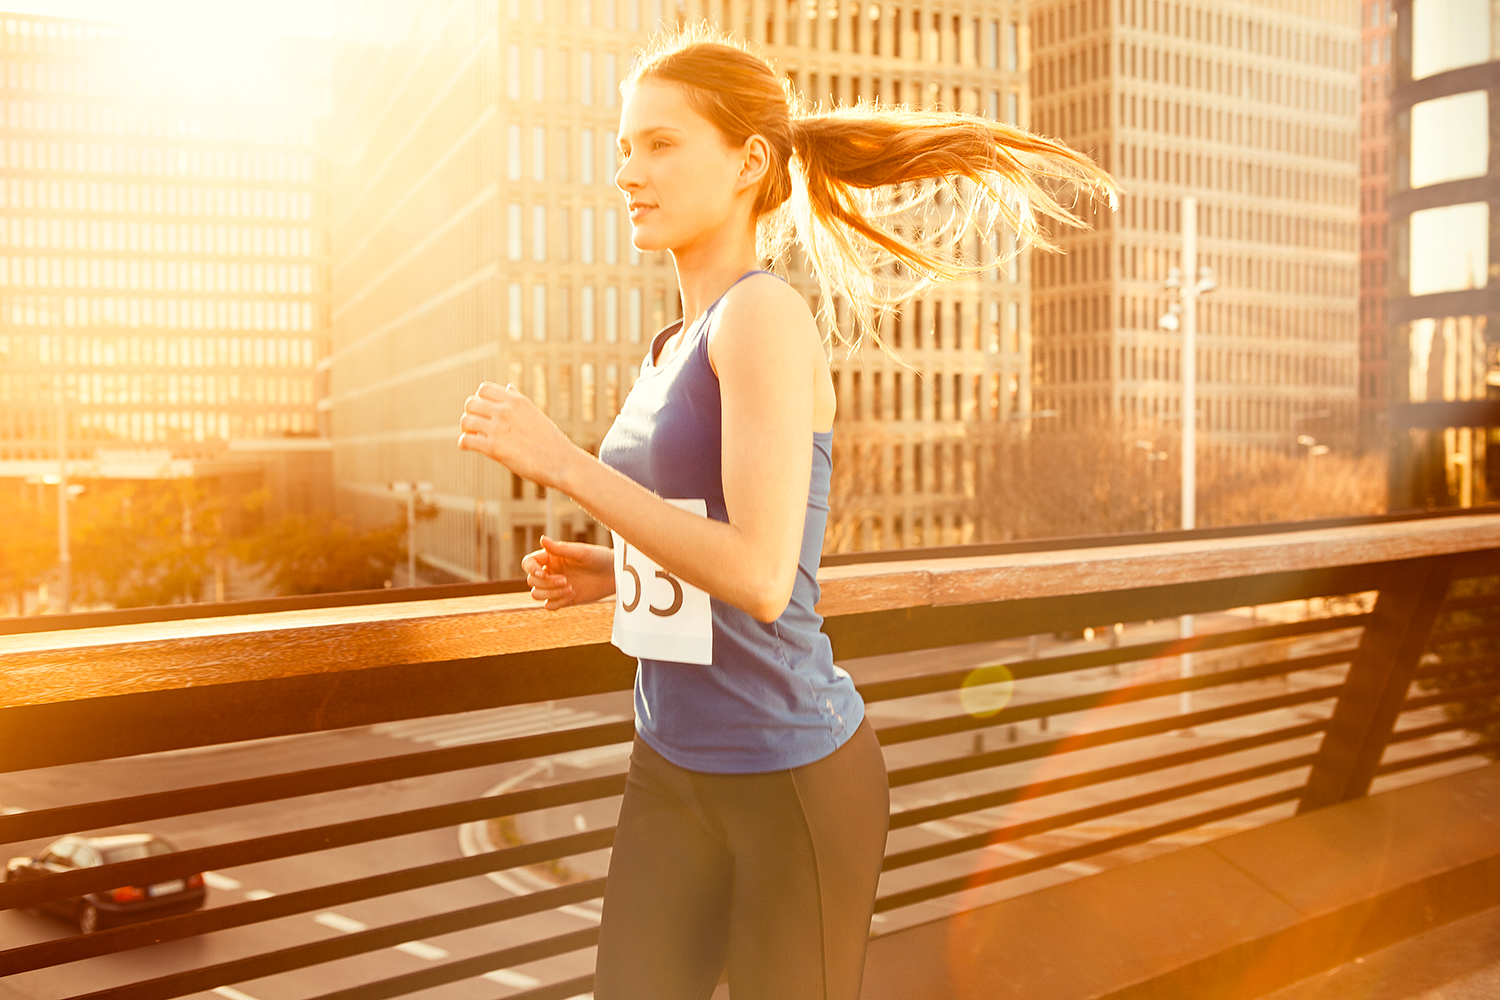 Woman Running in a Marathon During Sunset